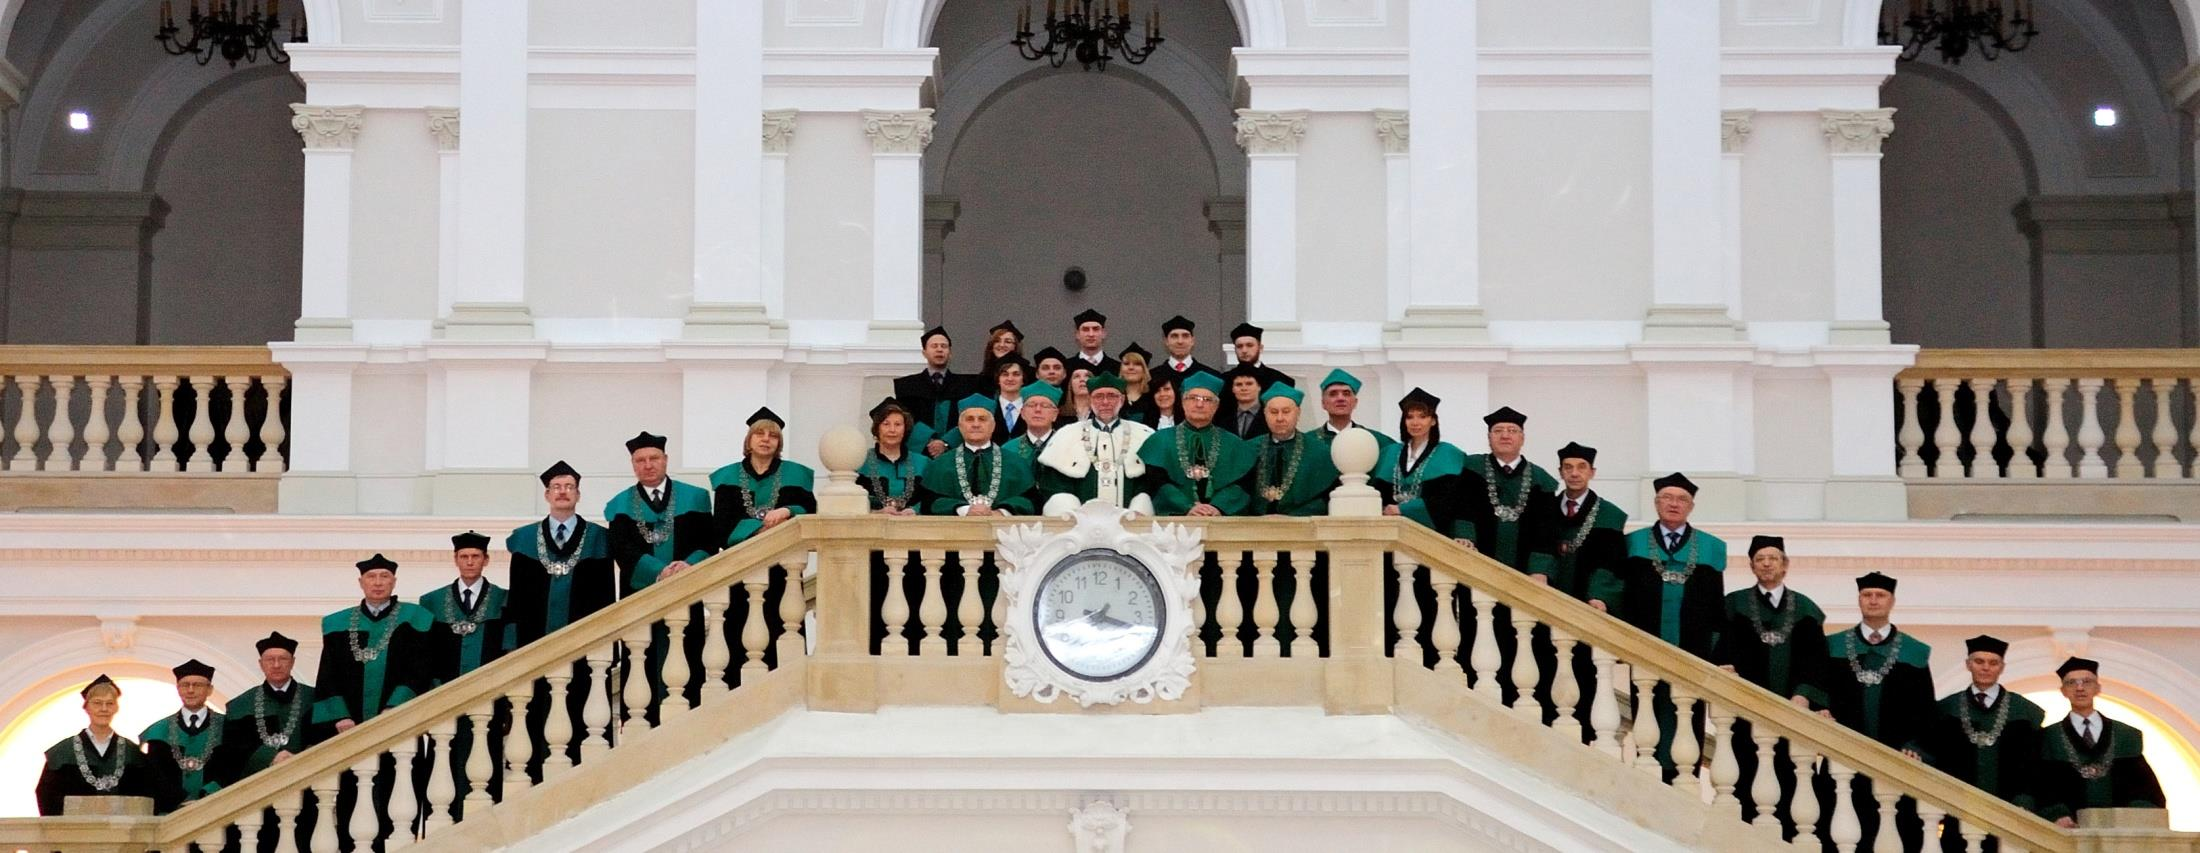 Chosen for a four-year term of office, the Rectors oversee the fulfilment of the Mission of Warsaw University of Technology, an